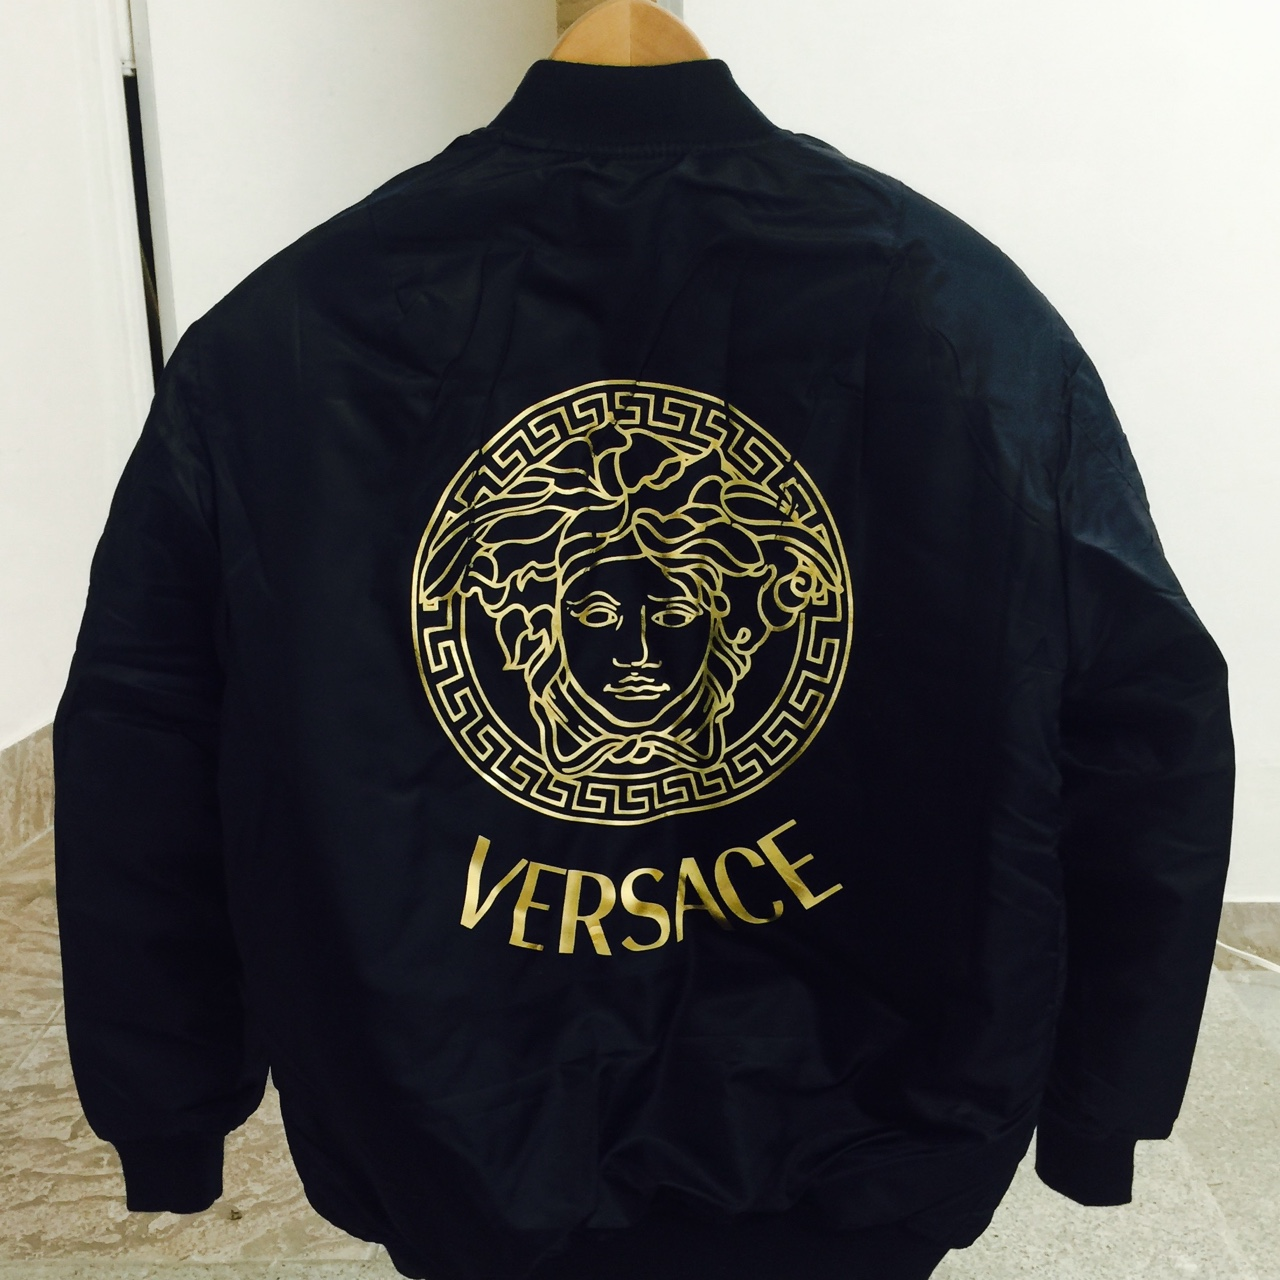 61ddbf6003 Versace Bomber Jacket in blue . . Mens Size Small - Depop